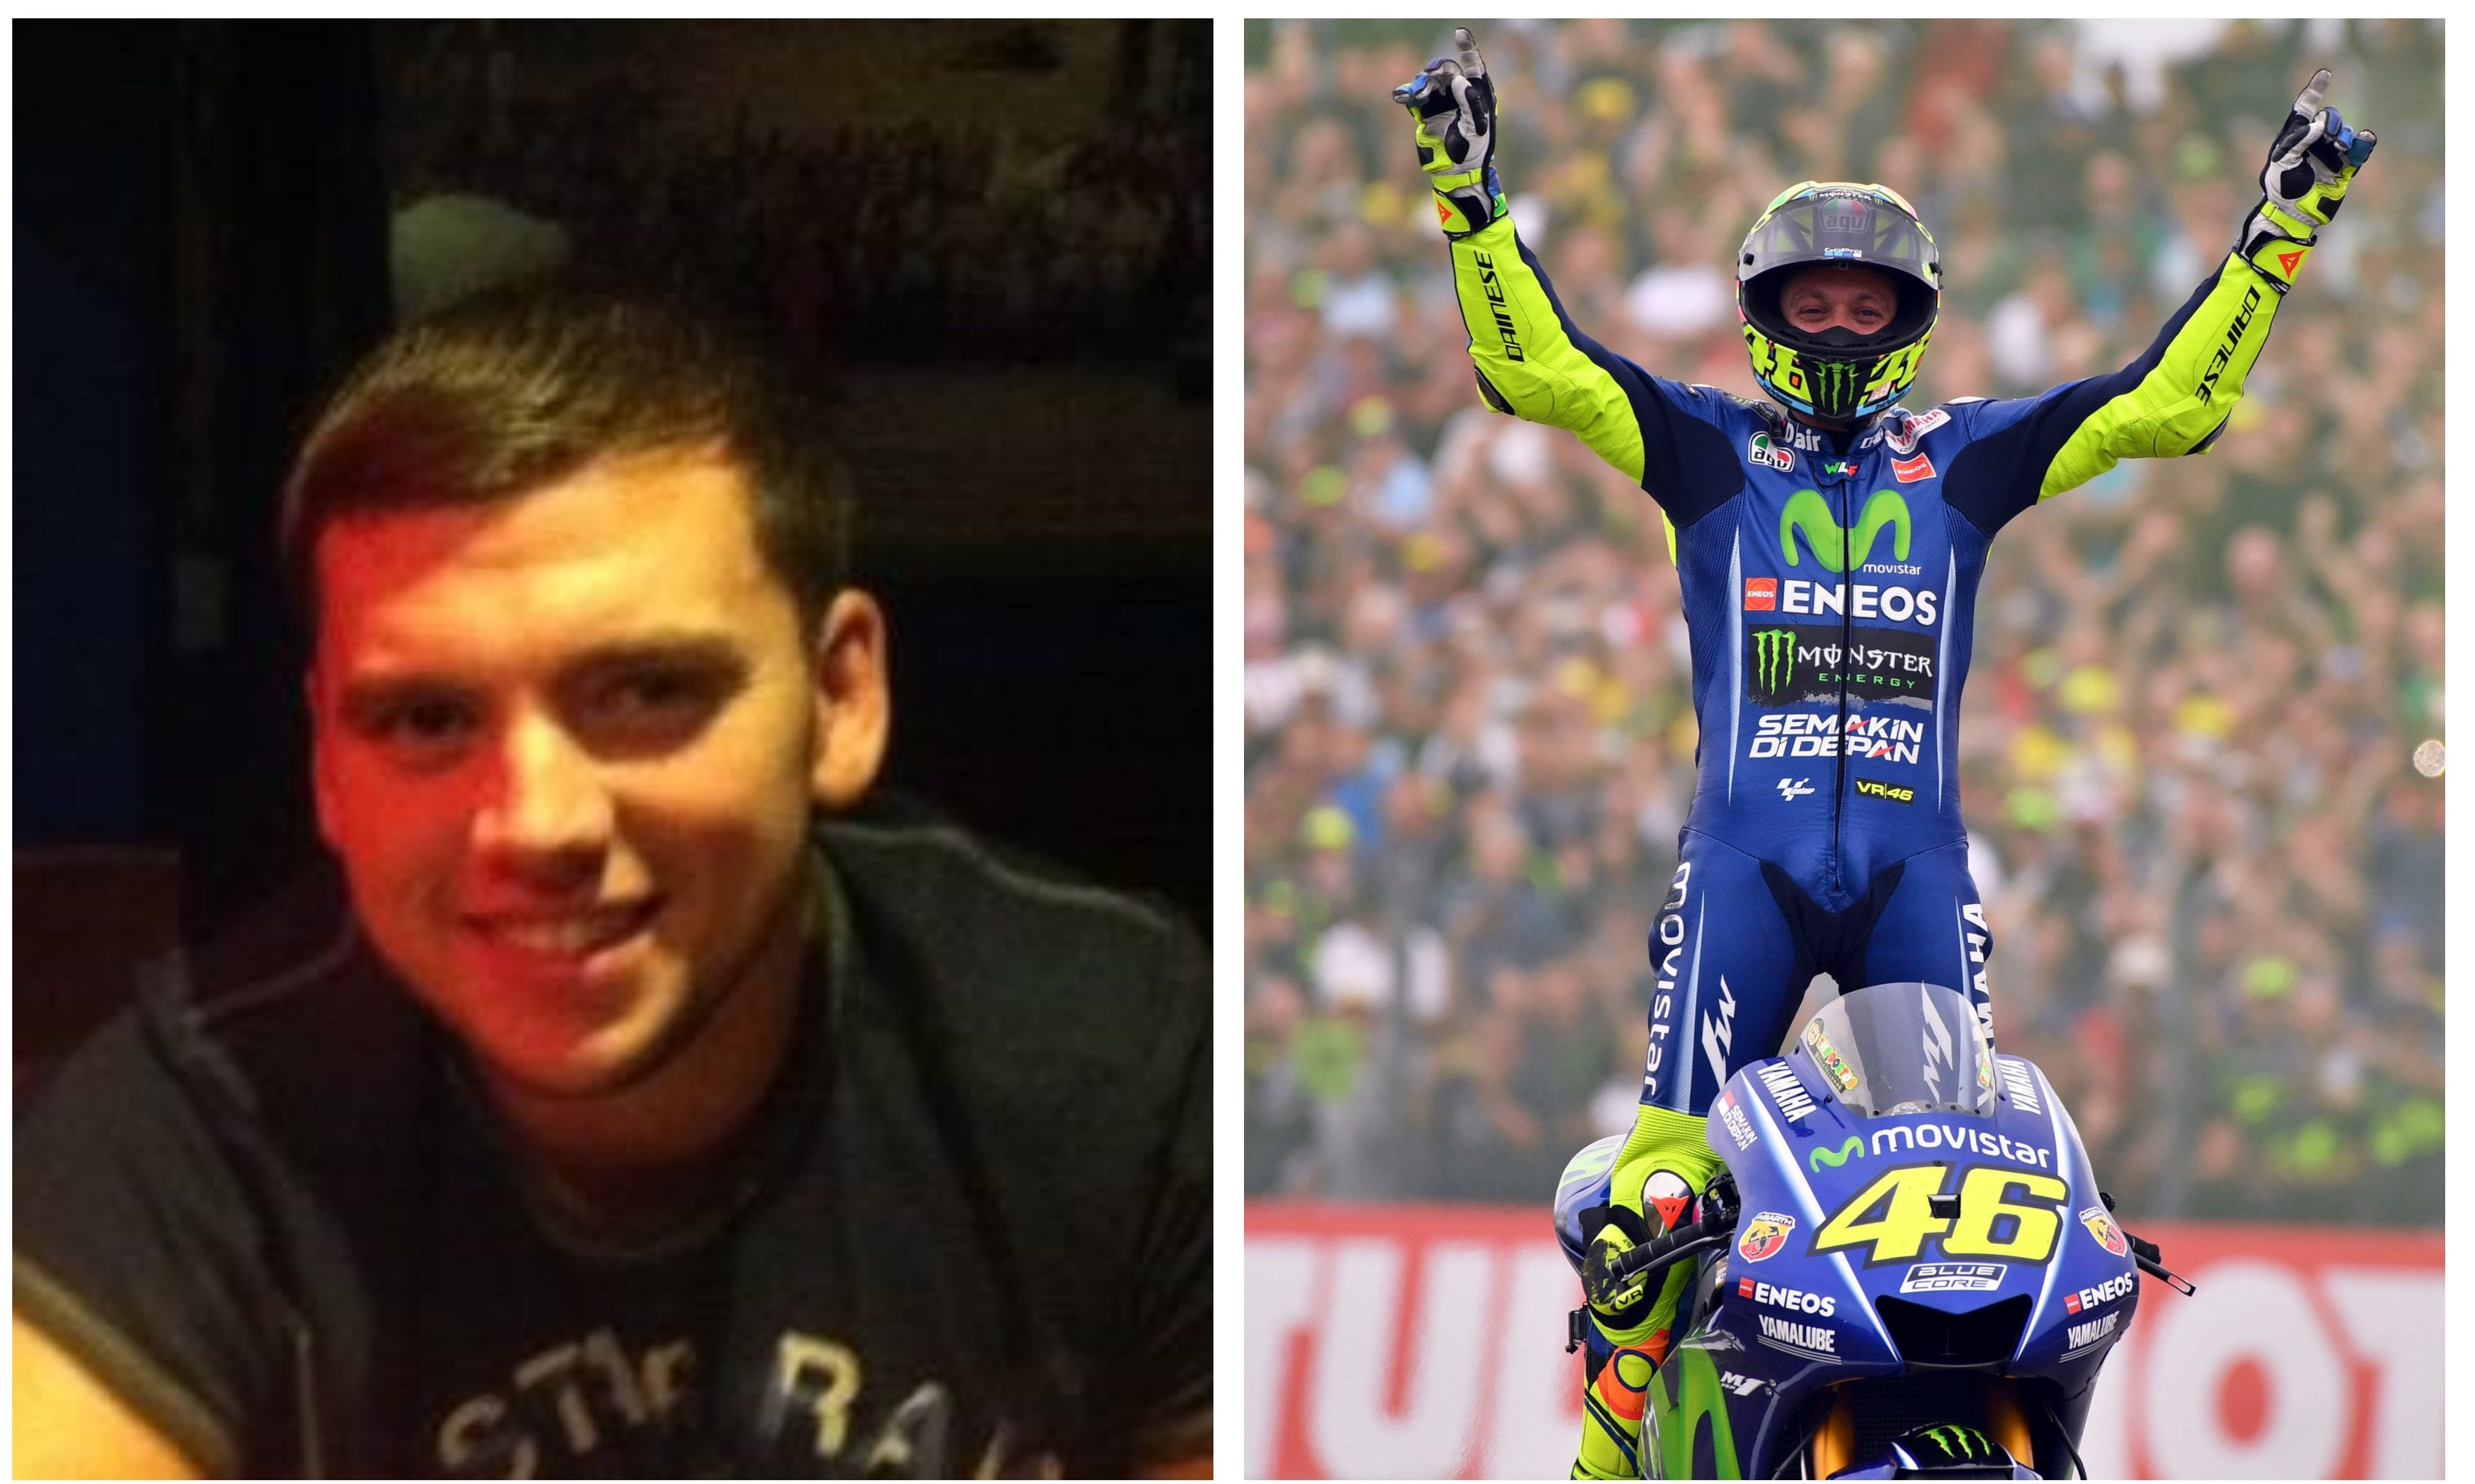 Steven Donaldson, left, and one of his motoring heroes Valentino Rossi, right.